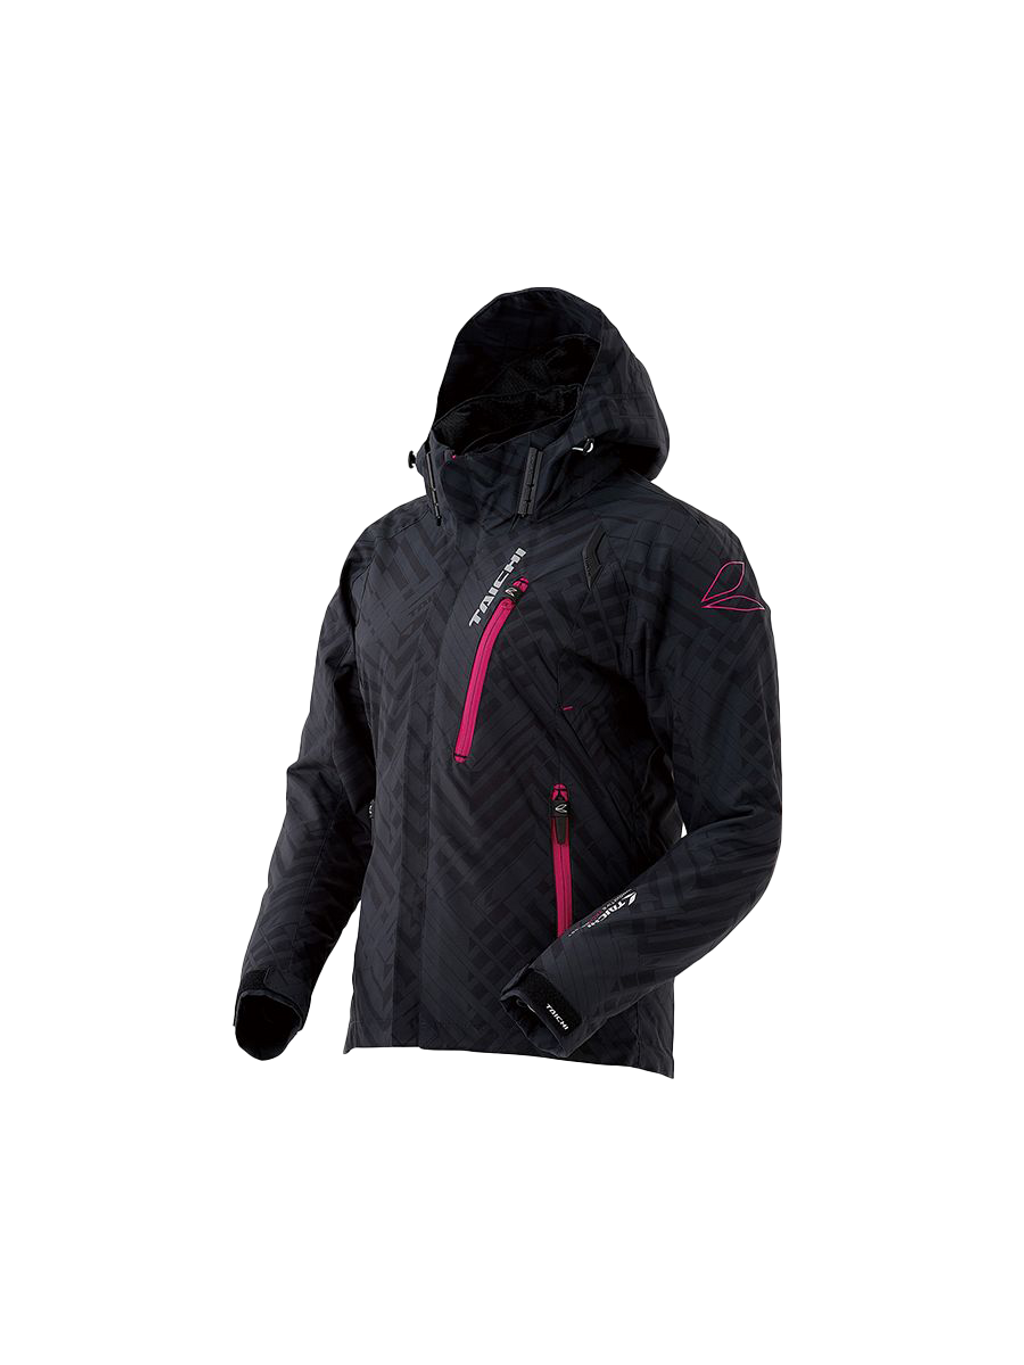 78 RS TAICHI RSJ321 WR PARKA FOREST PINK WOMAN (2).png